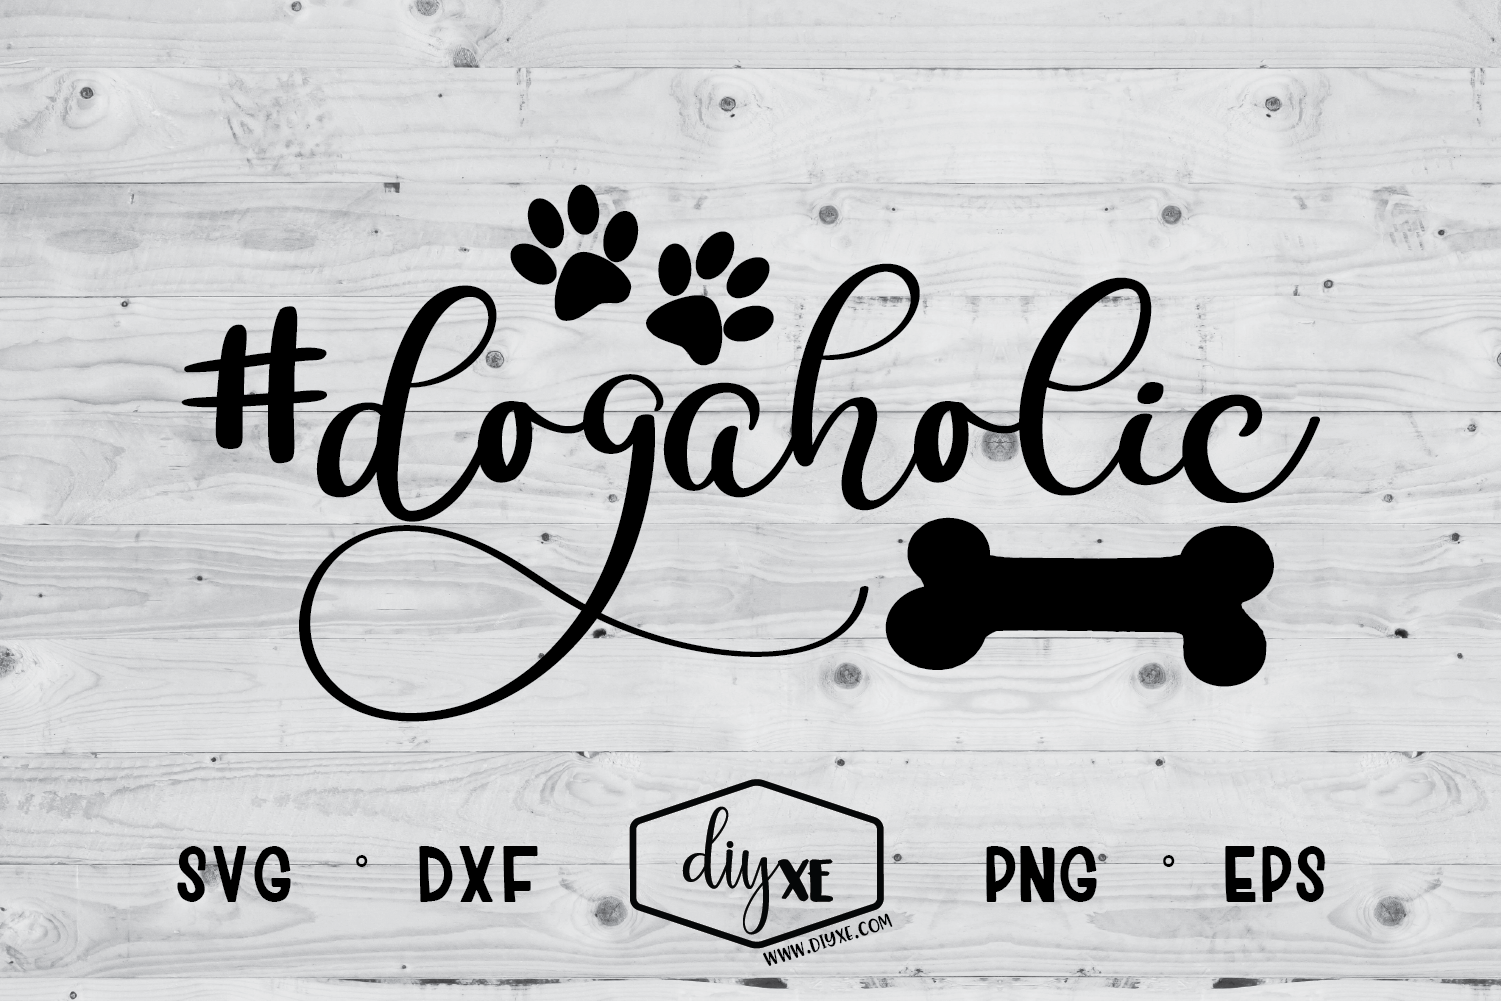 Download Free Dogaholic Graphic By Sheryl Holst Creative Fabrica for Cricut Explore, Silhouette and other cutting machines.